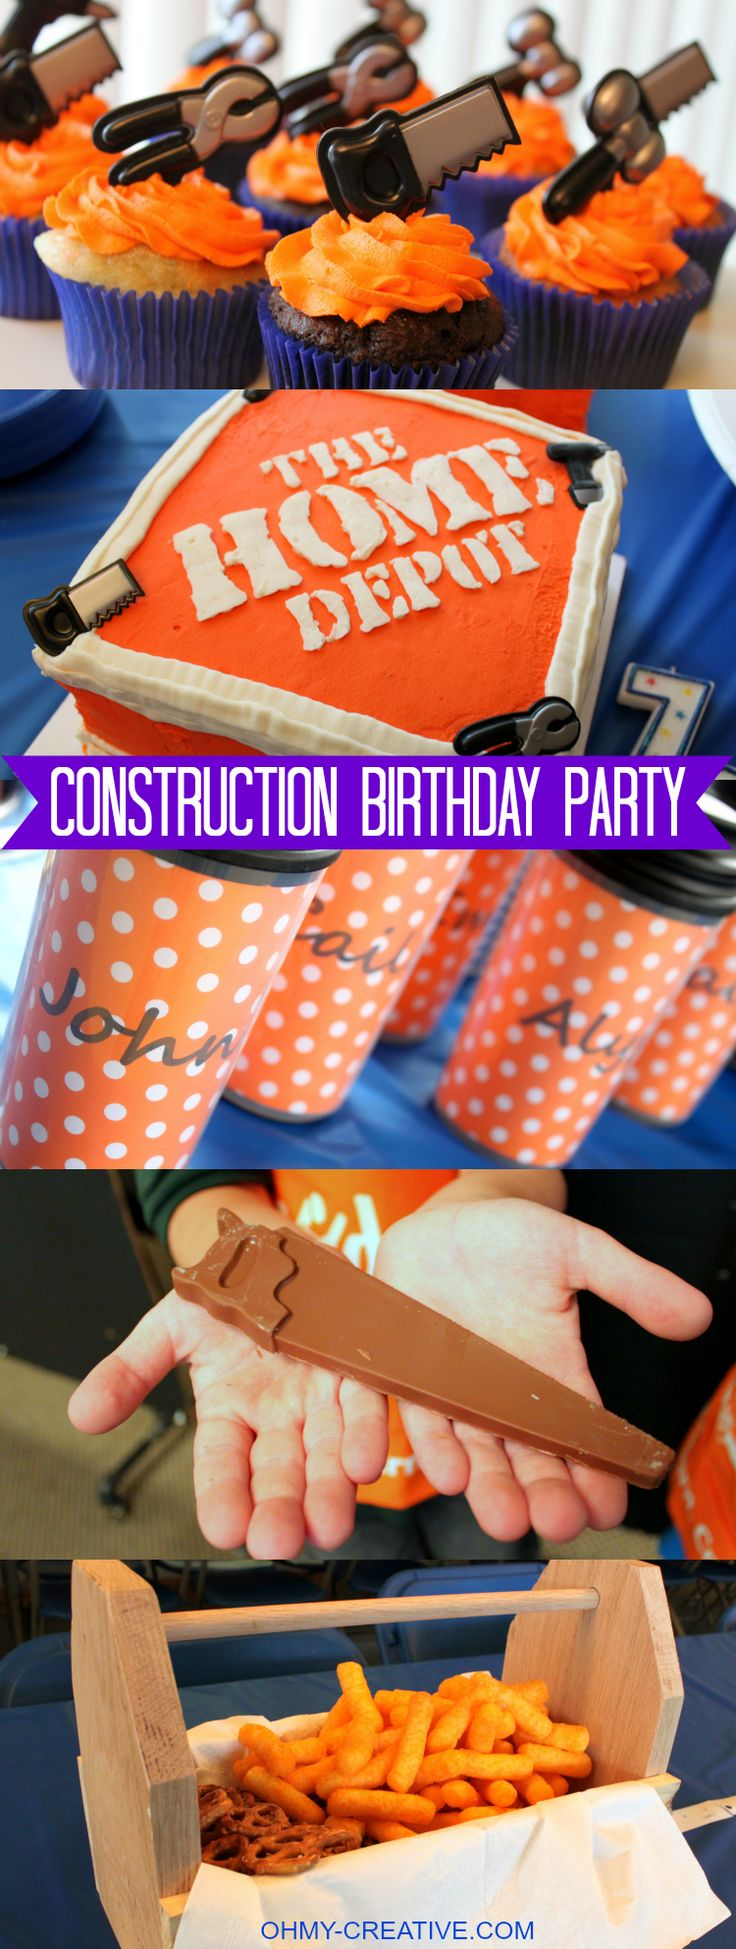 Home Depot Construction Birthday Party - a perfect party theme for the young and old alike! Great ideas for decoration, party favors and dessert tables     OHMY-CREATIVE.COM